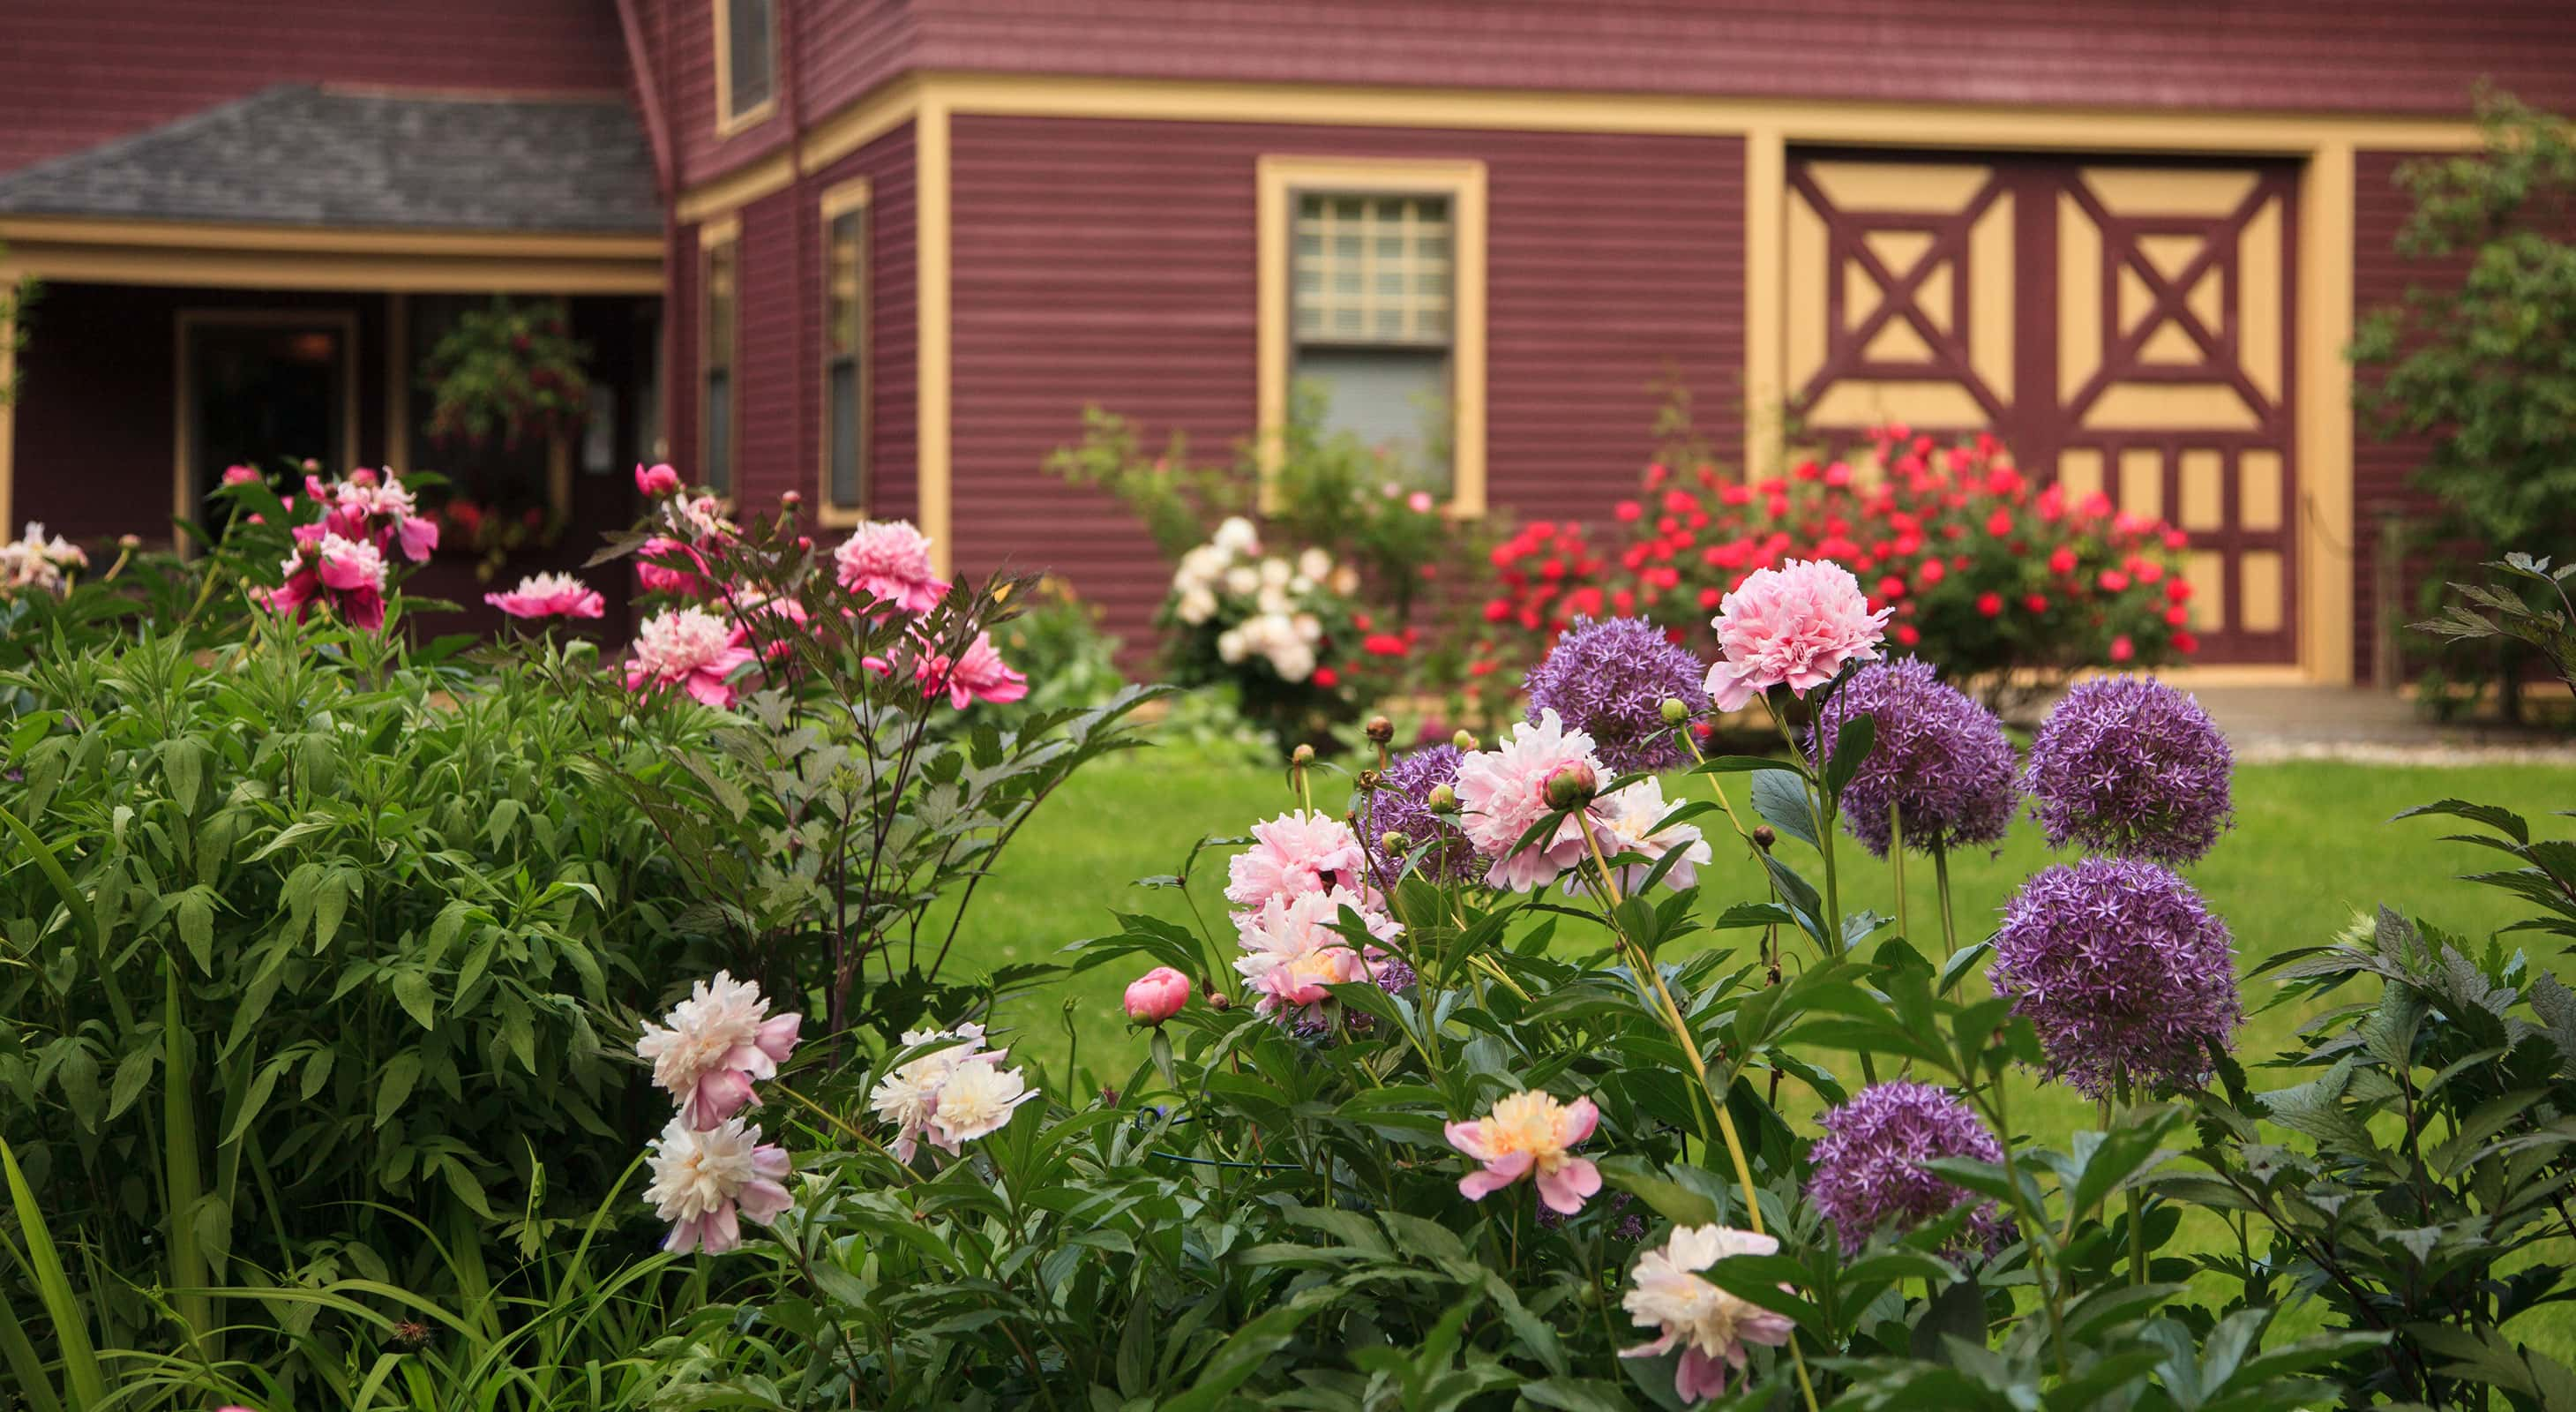 Flower bushes outside of the Berry Manor Inn